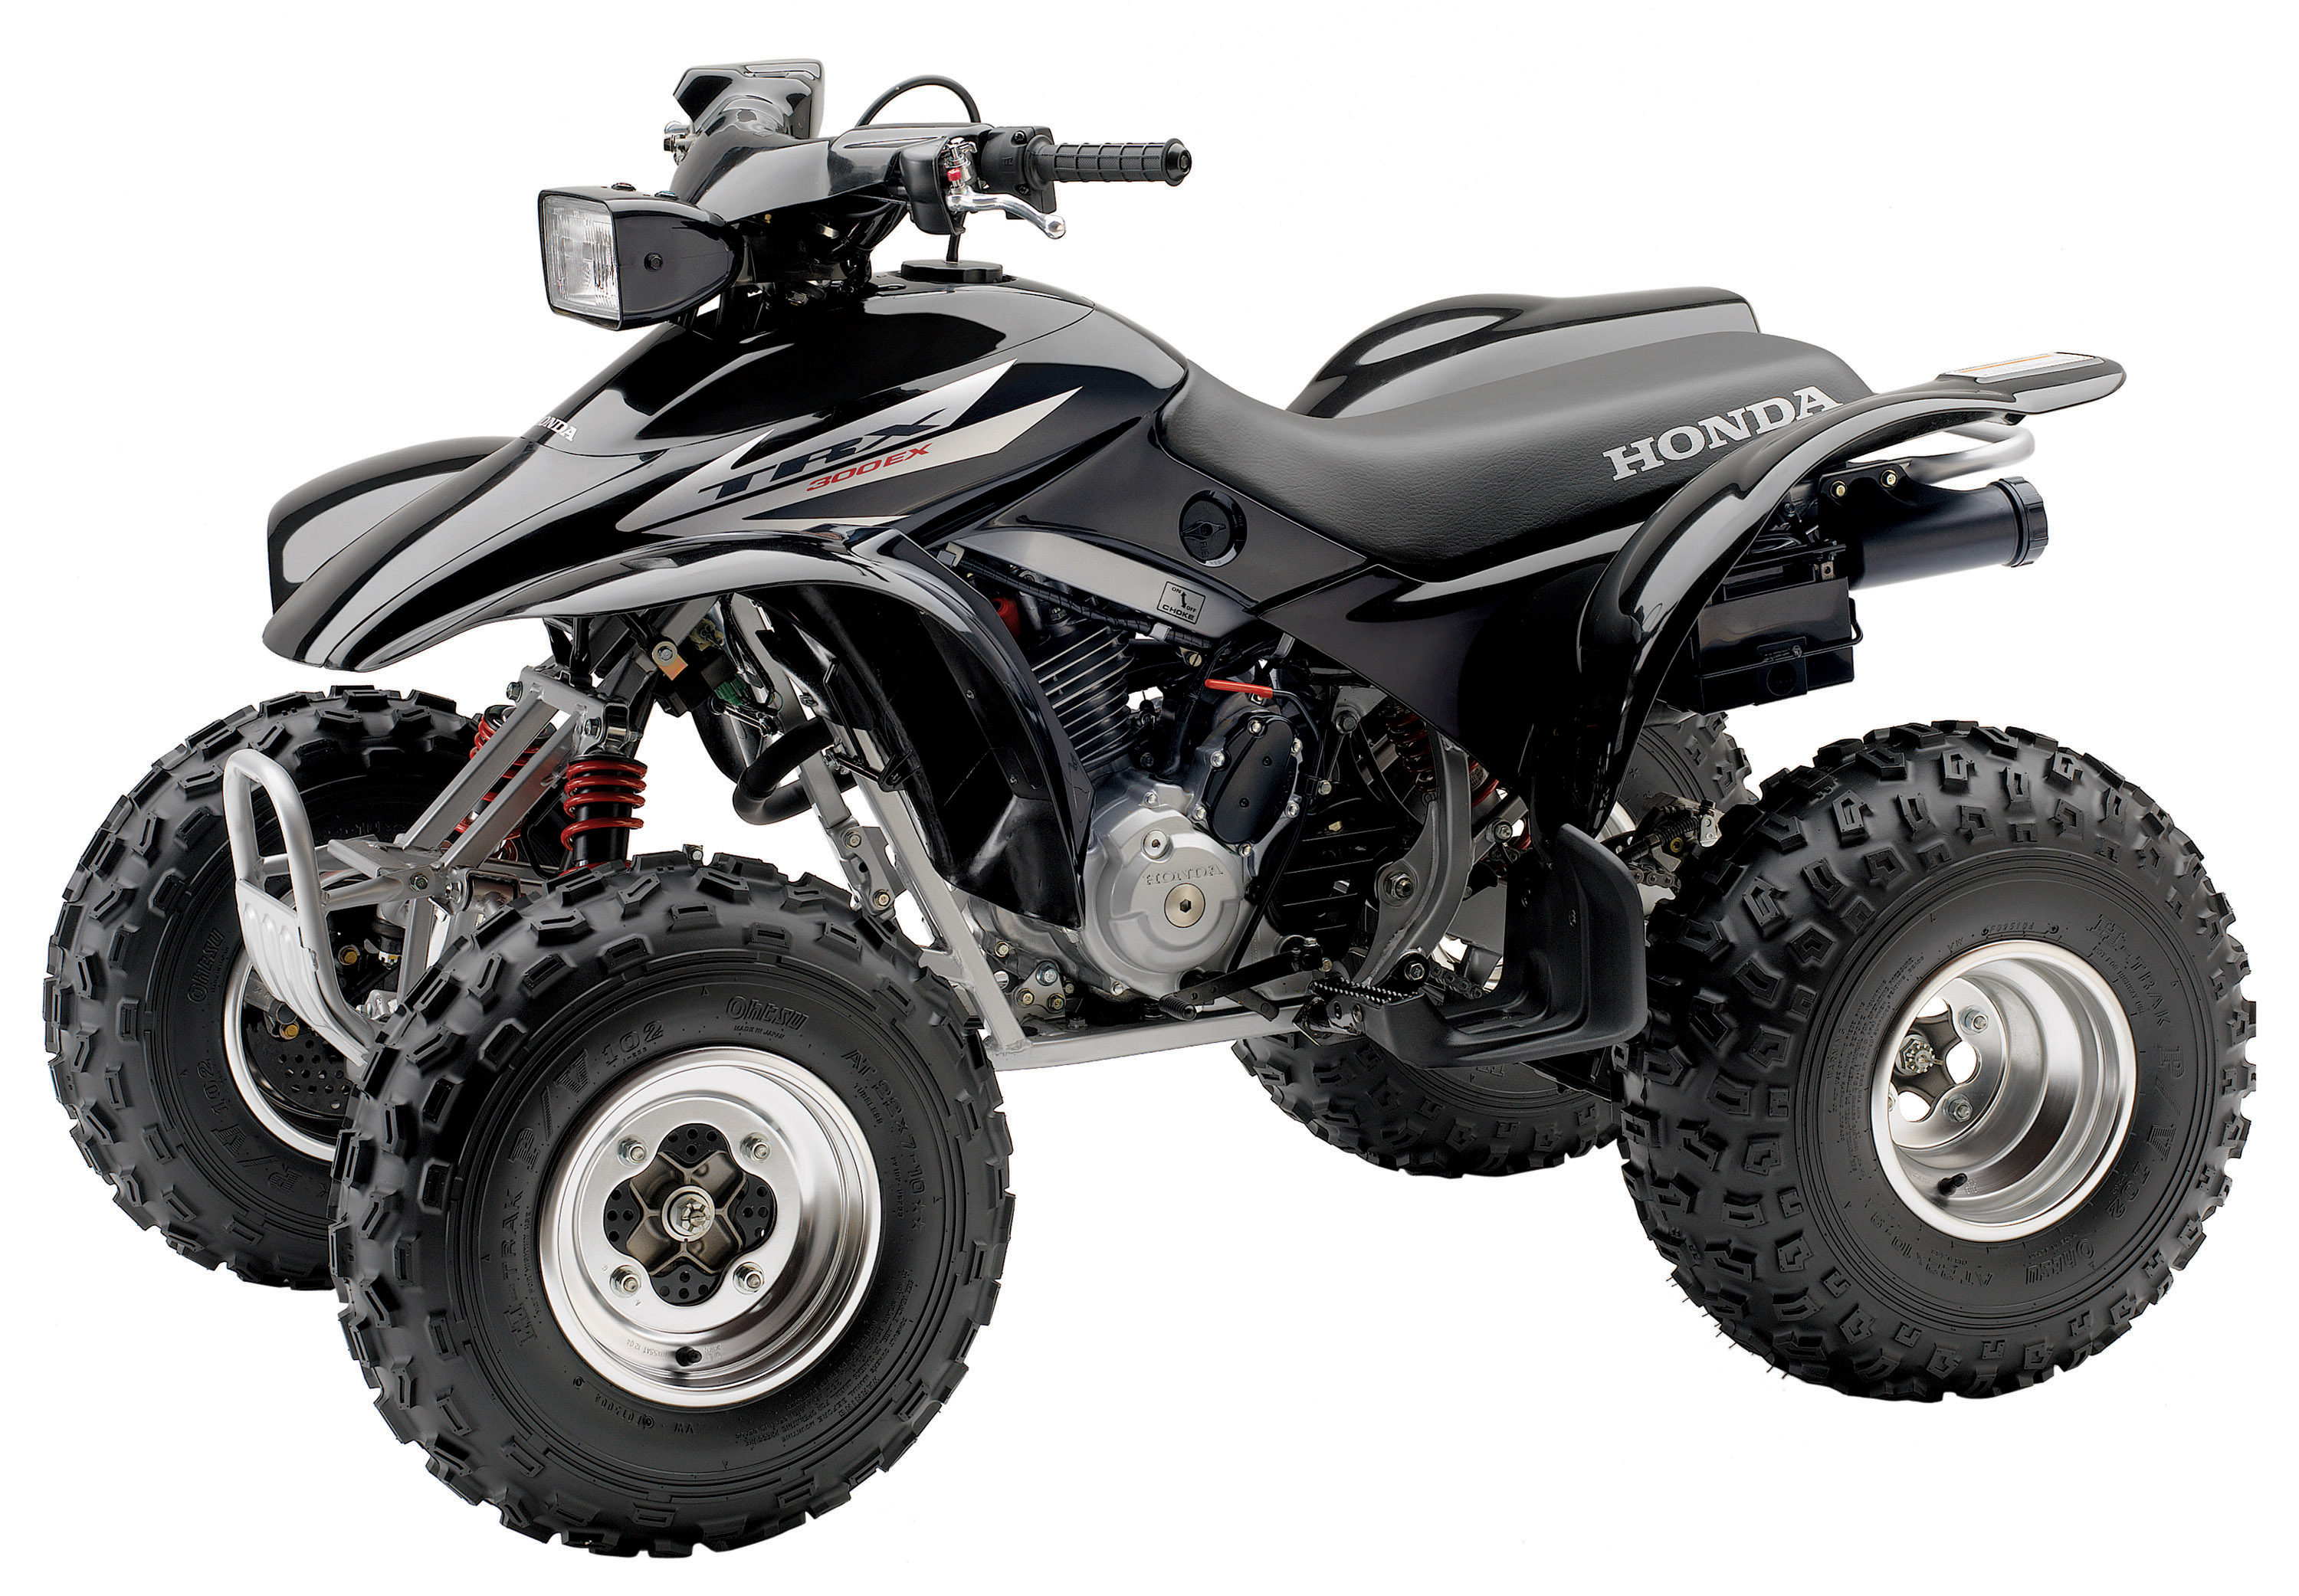 bikepics photo fourtrax recon picture full motorcycle pictures honda